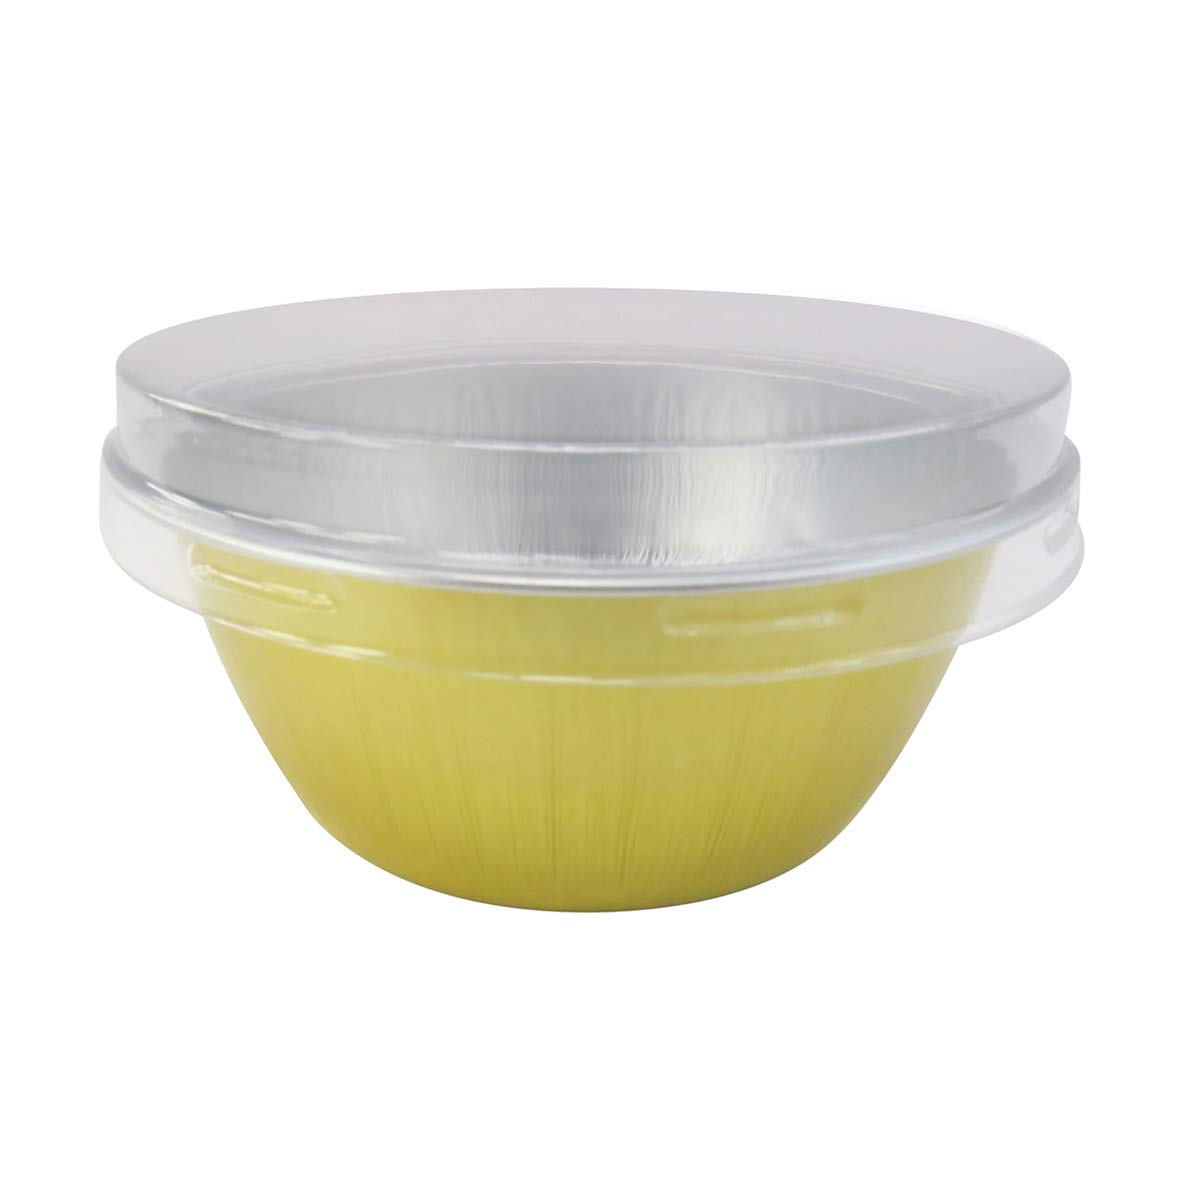 KitchenDance Disposable Aluminum Colored Baking Cups- Creme Brulee cups- Dessert Cups- 4 oz. Size with Lids (100, Gold w/Flat Lid) by KitchenDance